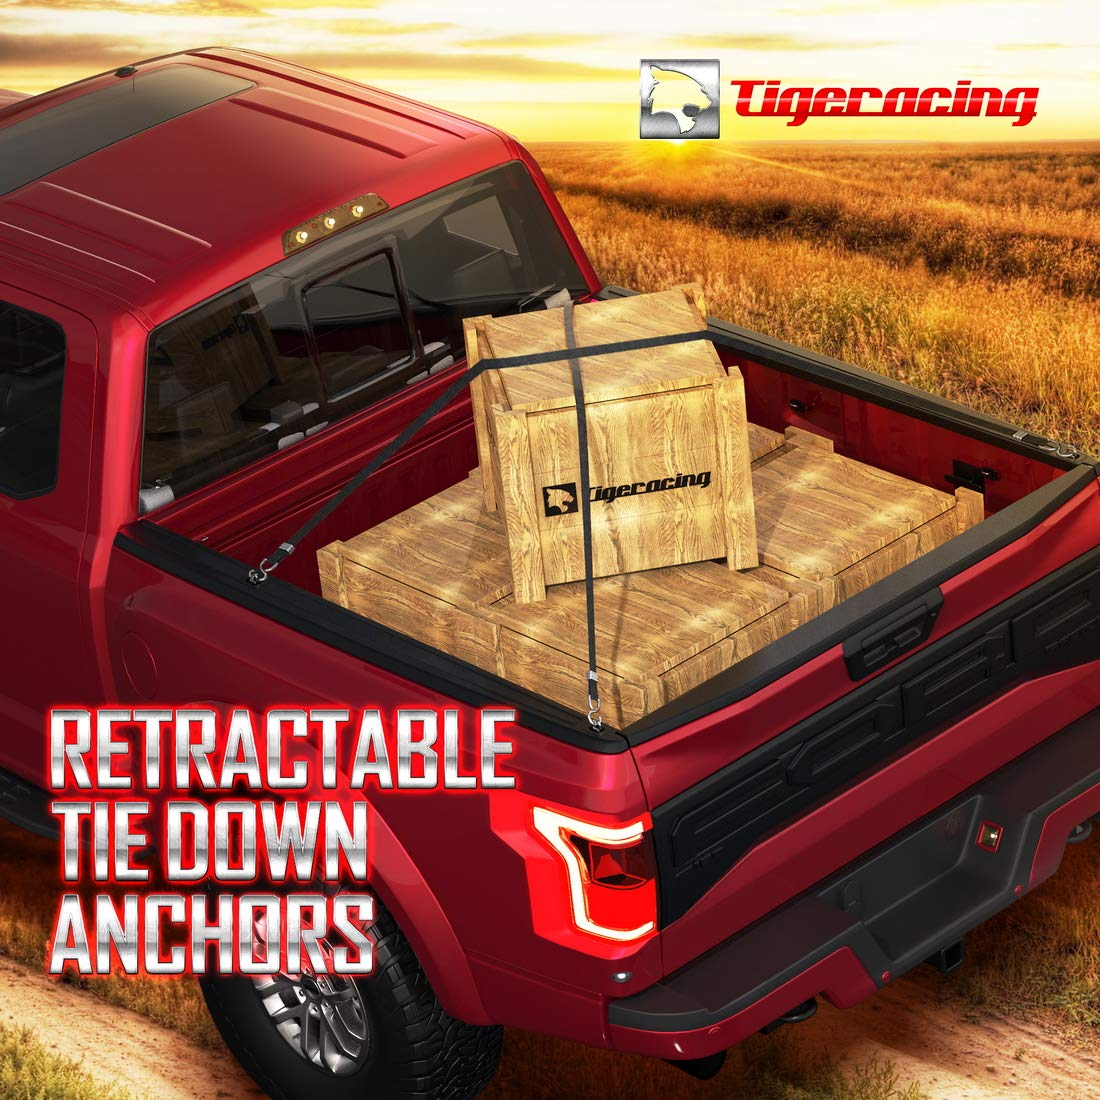 1998-2016 Super Duty with Mis-Aligned Rail Cap All Metal 3000 LBS Capacity Tigeracing Tie Down Anchors Retractable Truck Bed D Ring Compatible 1998-2014 F150 of 4